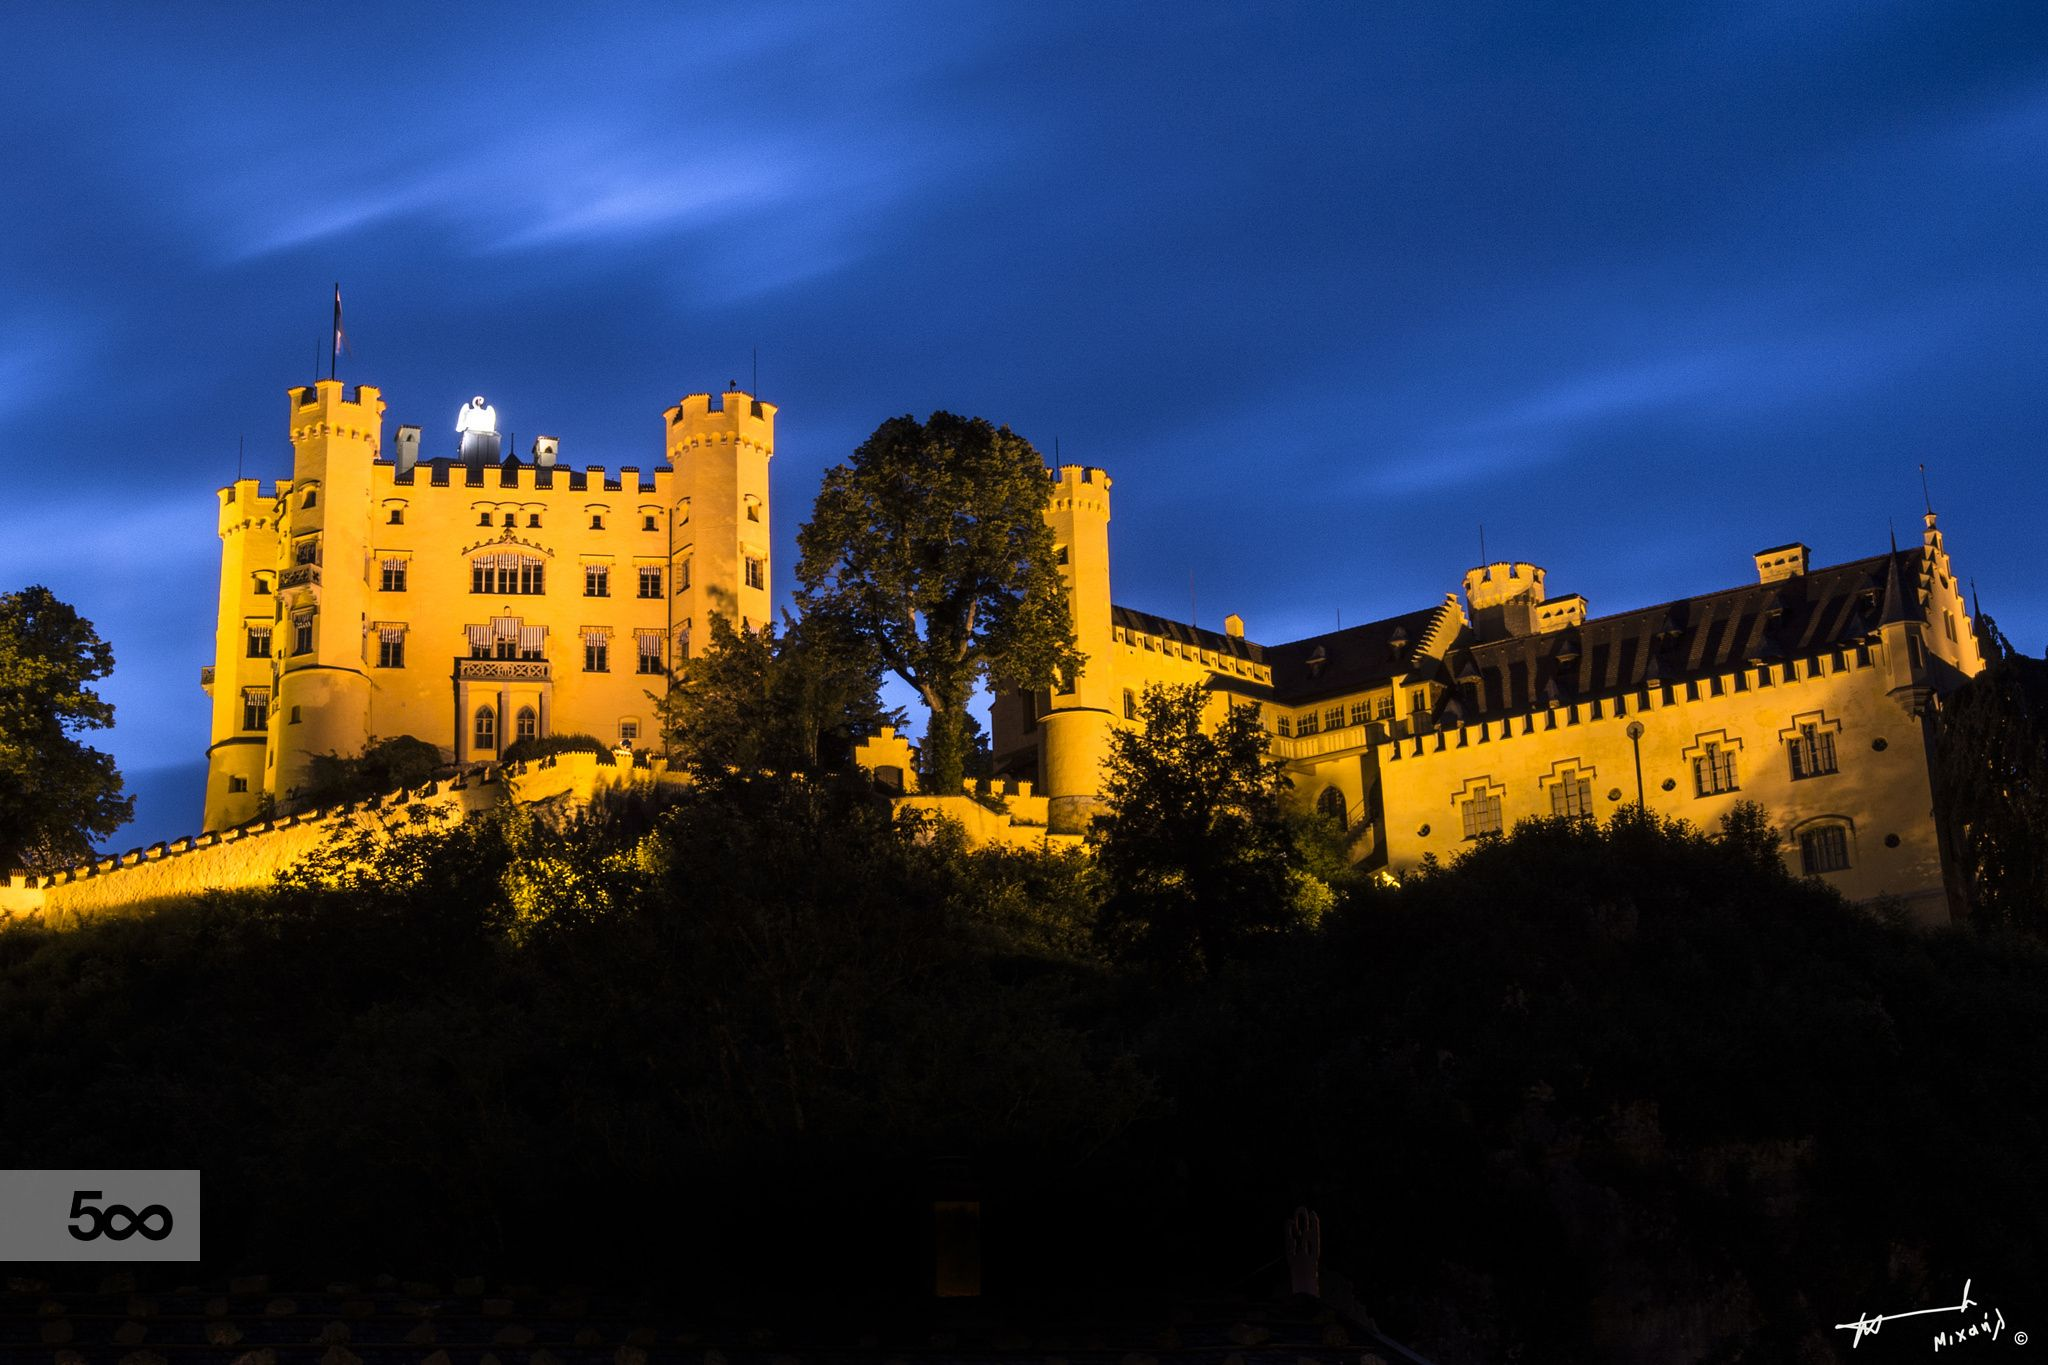 Hohenschwangau Castle Was Built On The Remains Of The Fortress Schwangau Which Was First Mentioned In Historical Records Dating From The 12th Century Con Imagenes